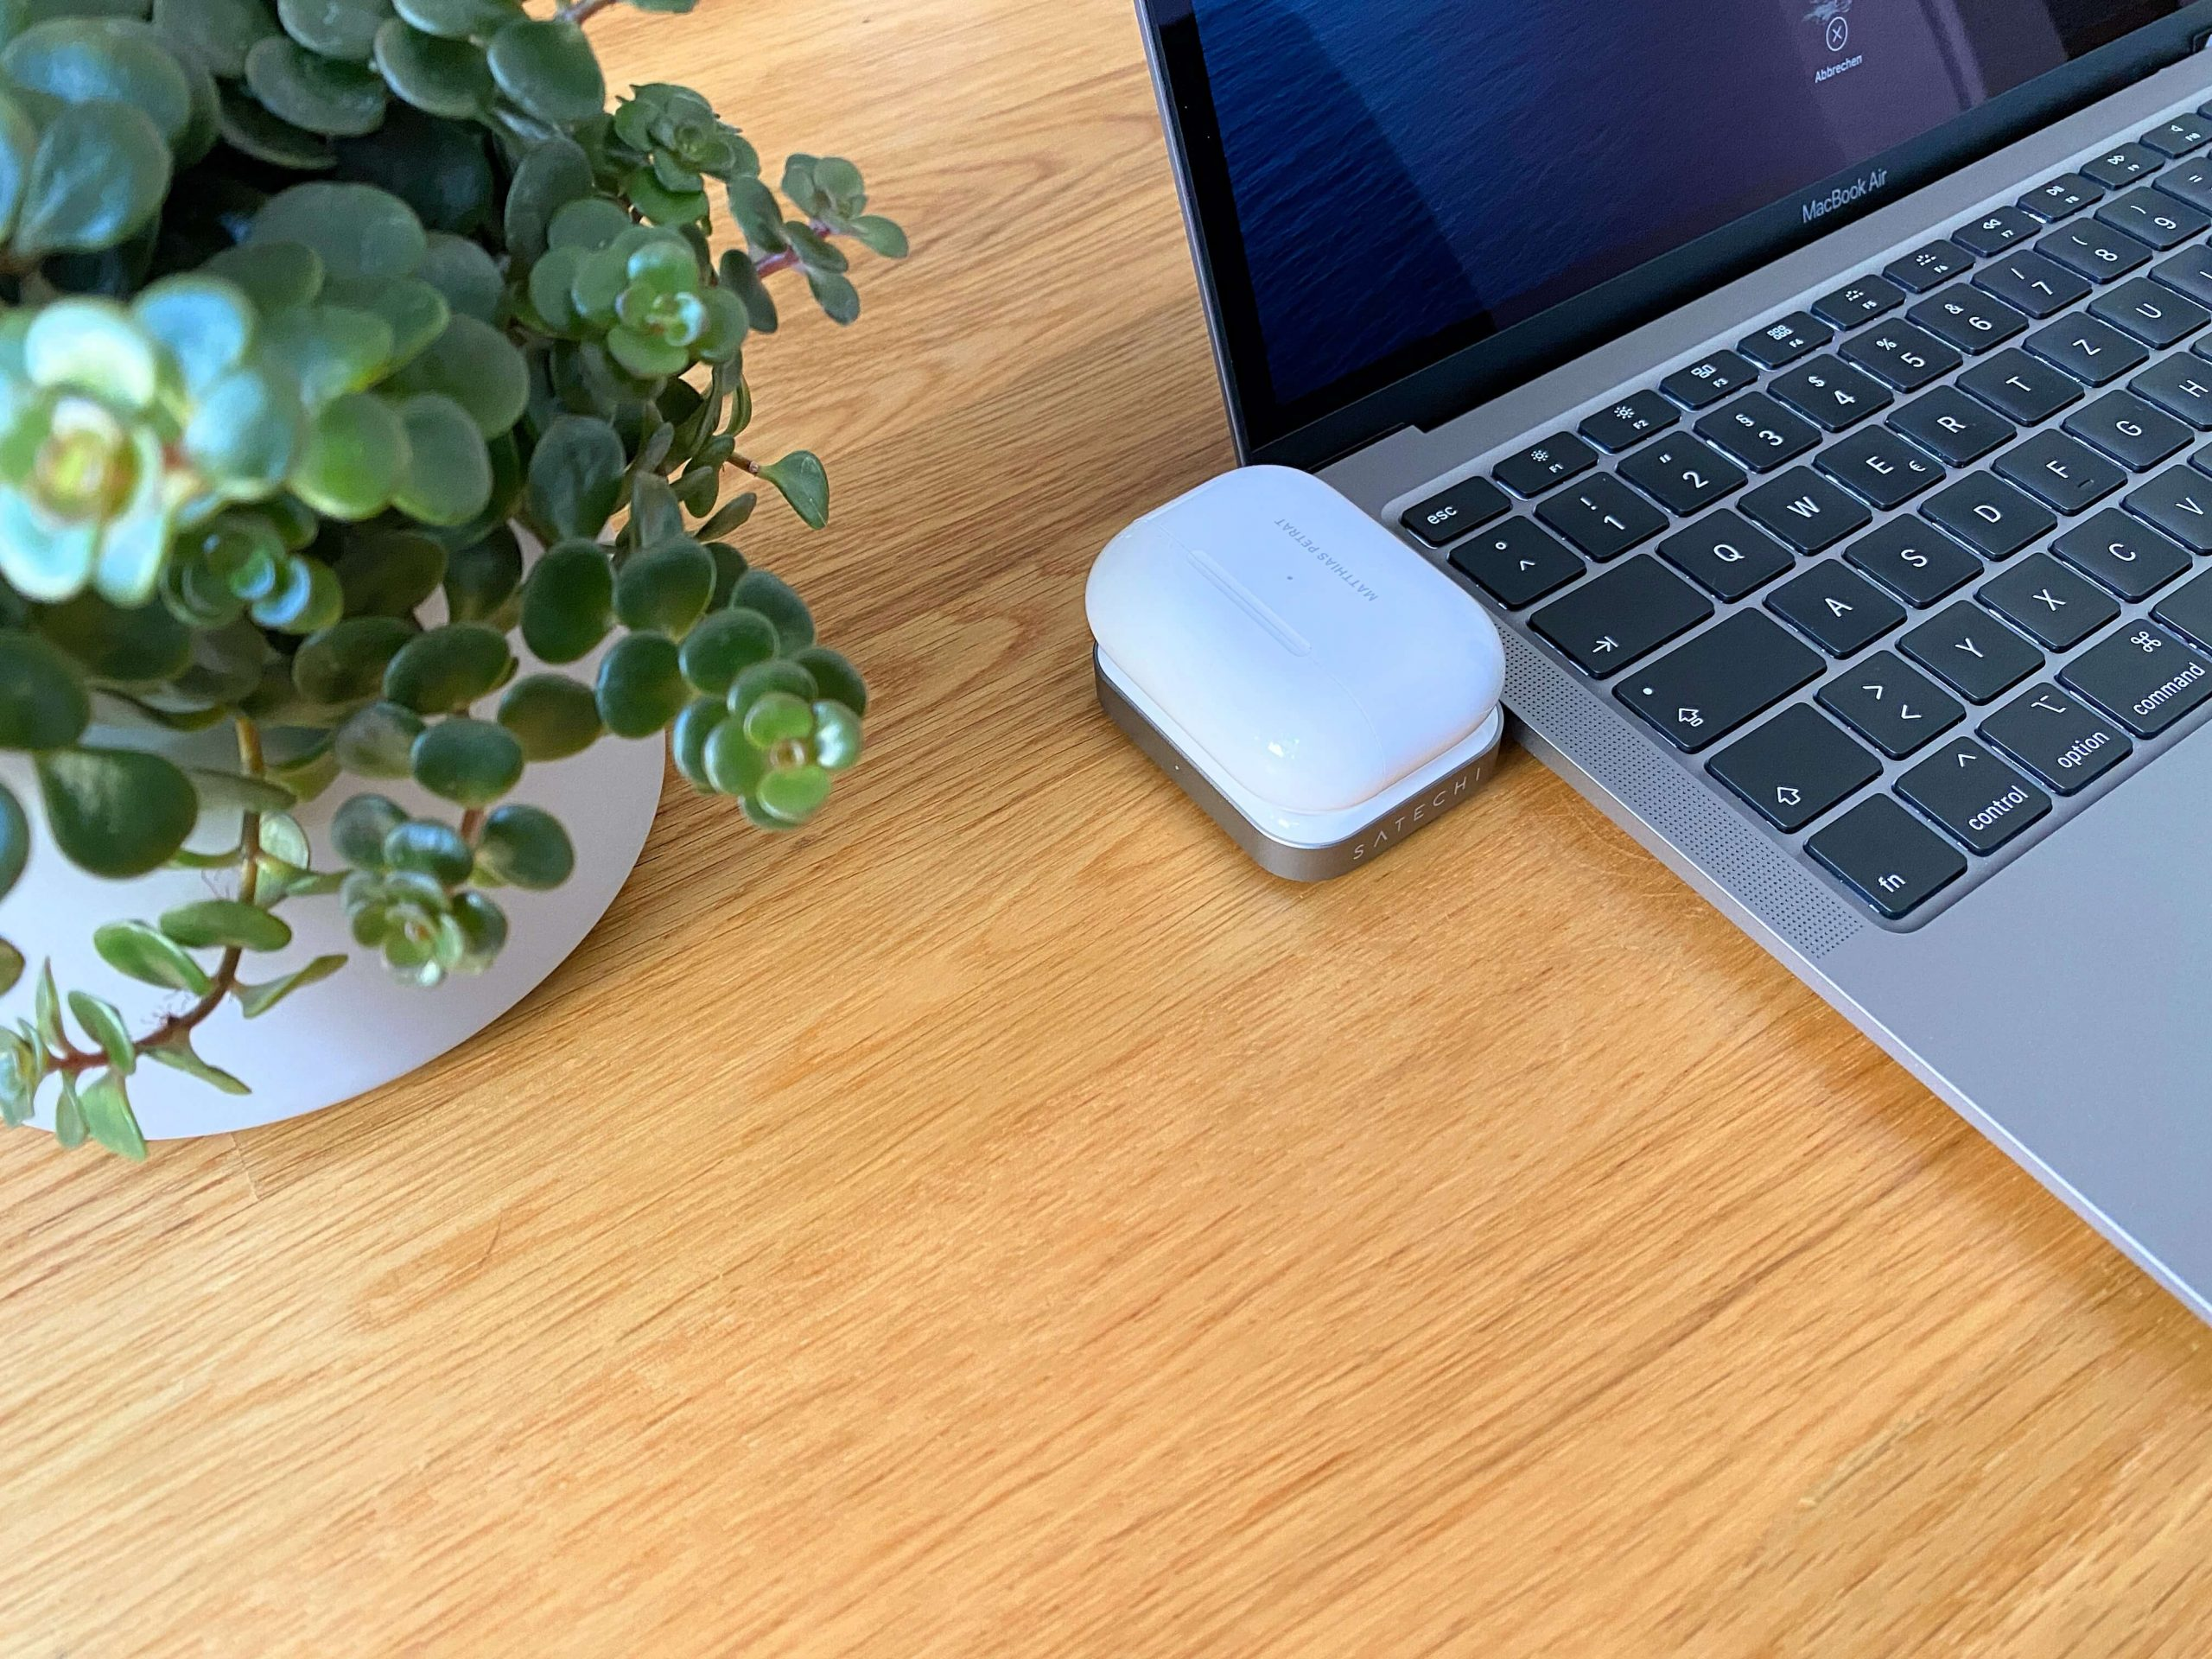 AirPods-Charger-von-Satechi-ohne-Kabel-via-USB-C-laden1-scaled AirPods Charger von Satechi - ohne Kabel via USB-C laden